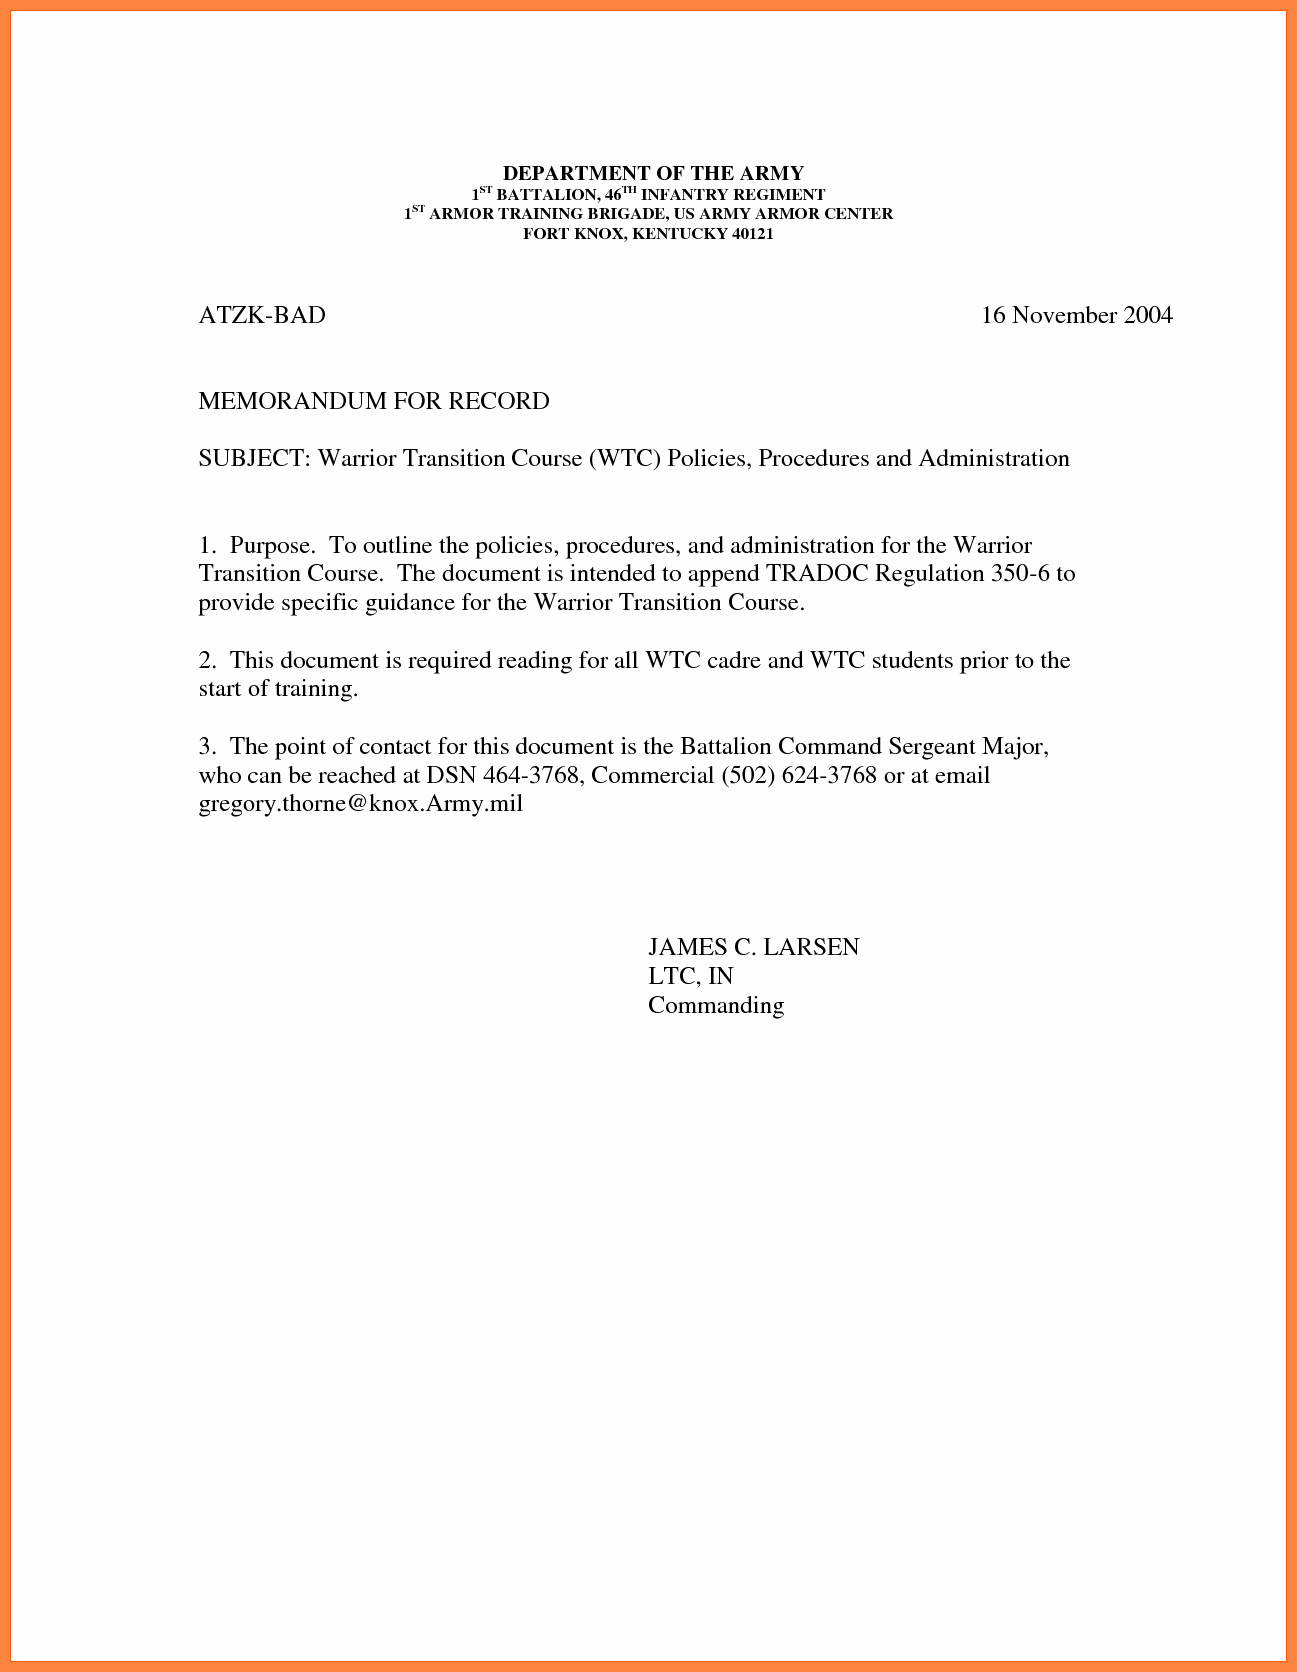 Army Memorandum for Record Template Awesome 9 Memorandum for Record Army